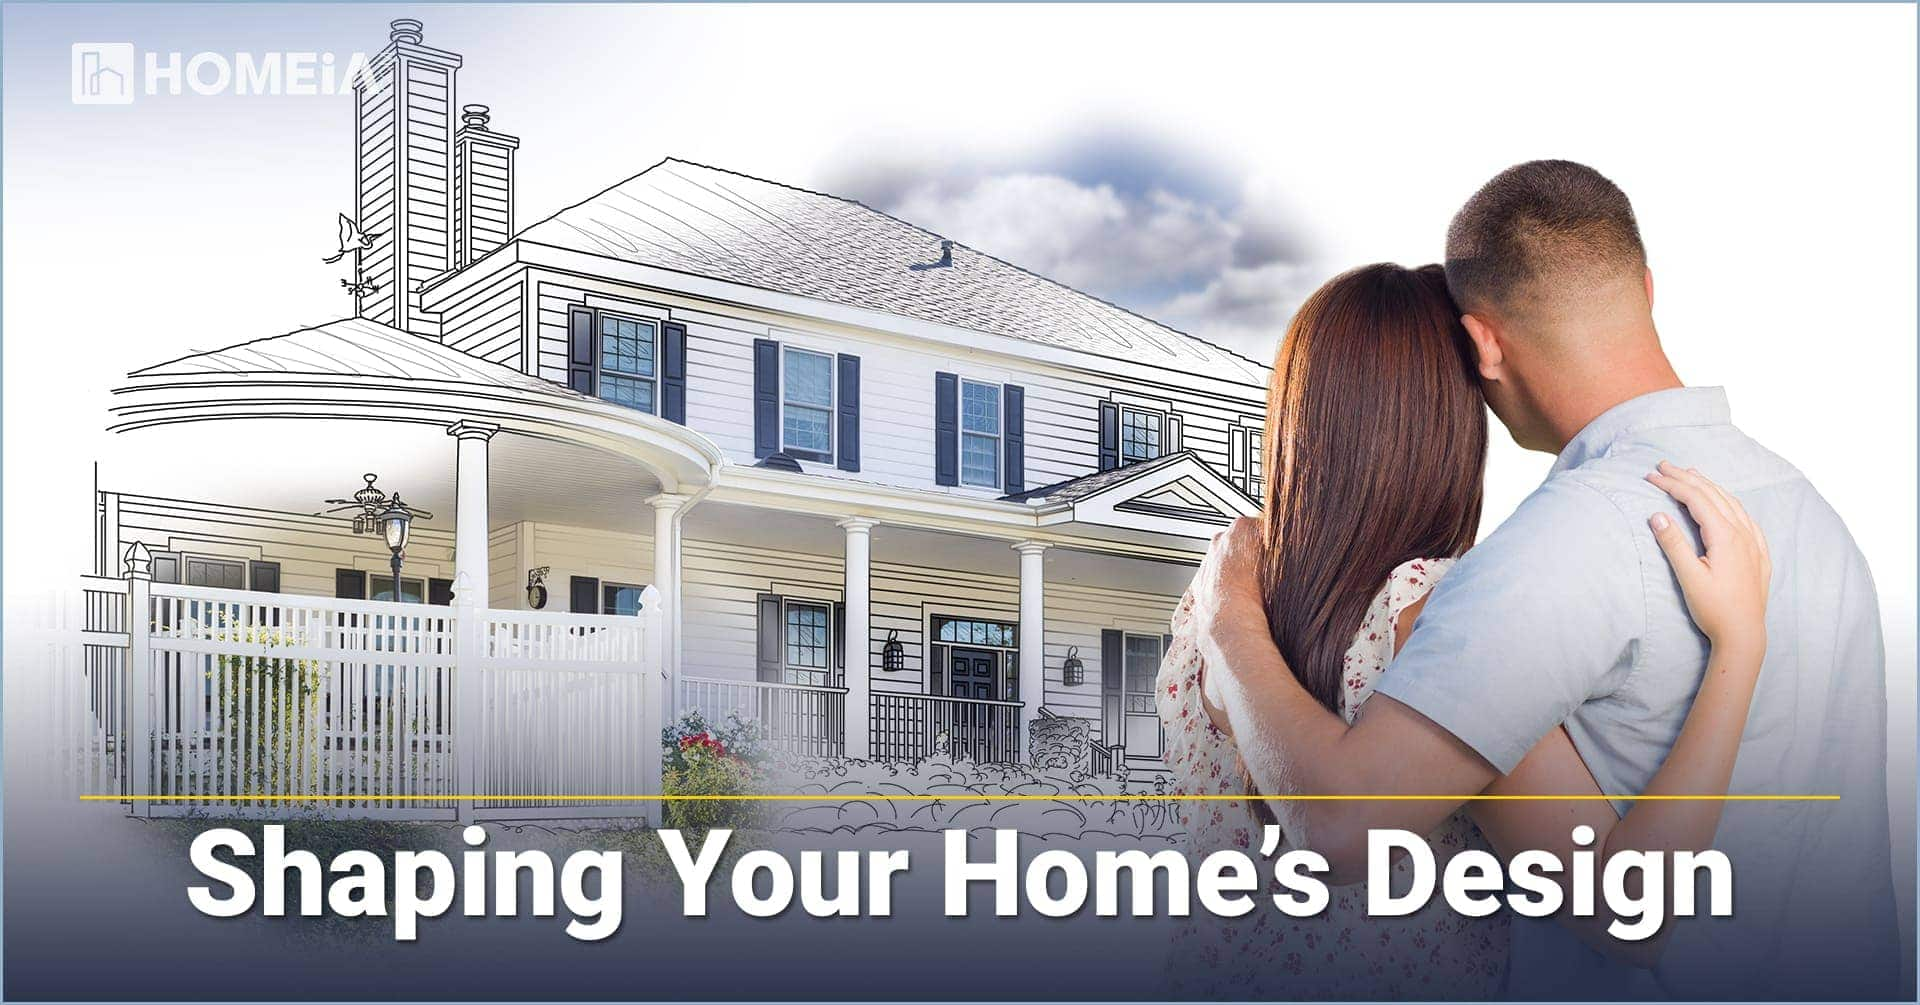 Shaping Your Home's Design